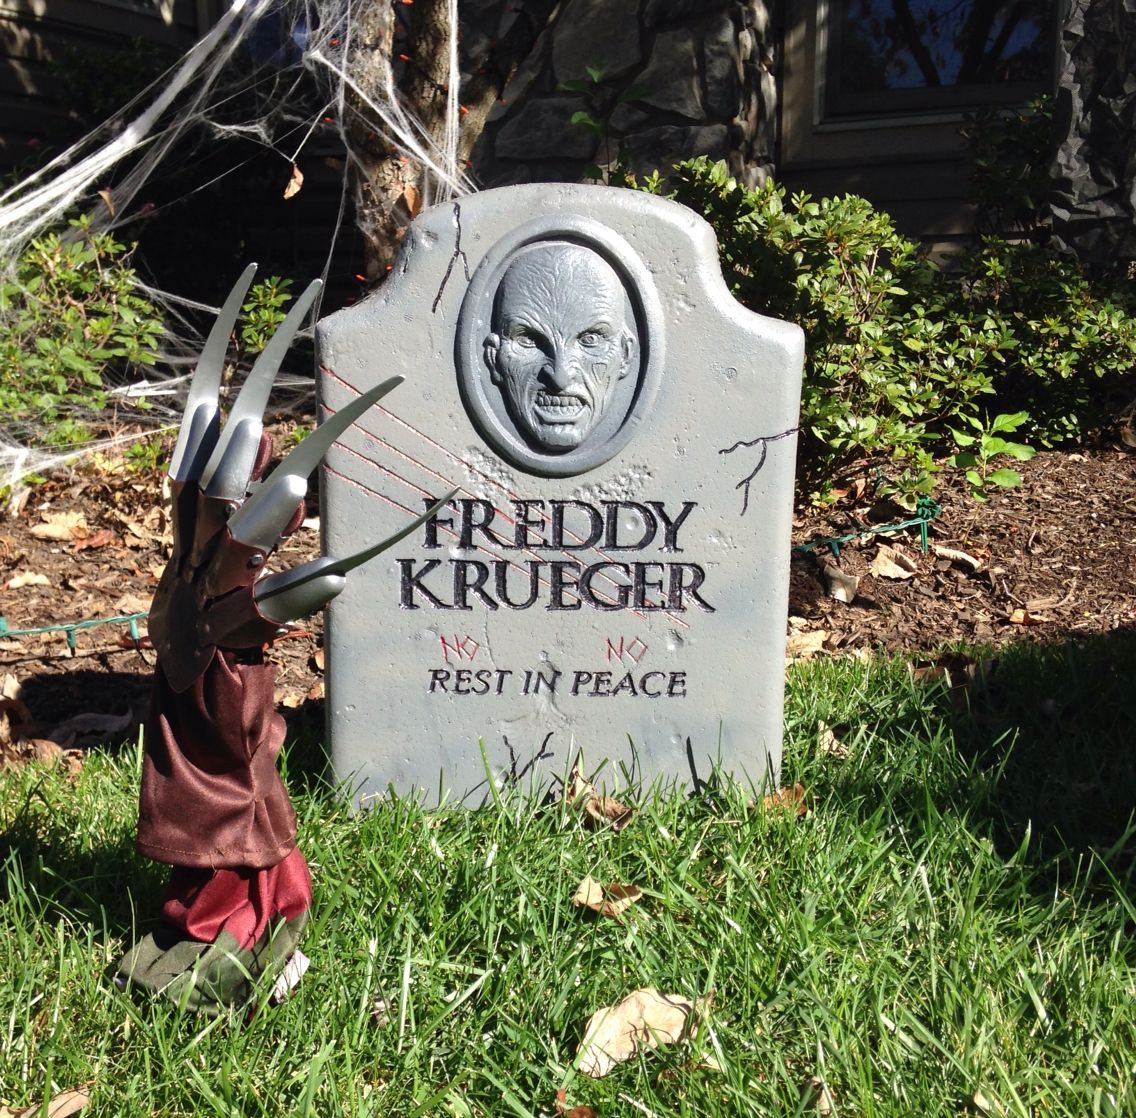 freddy krueger grave outdoor props halloween graveyard - Freddy Krueger Halloween Decorations